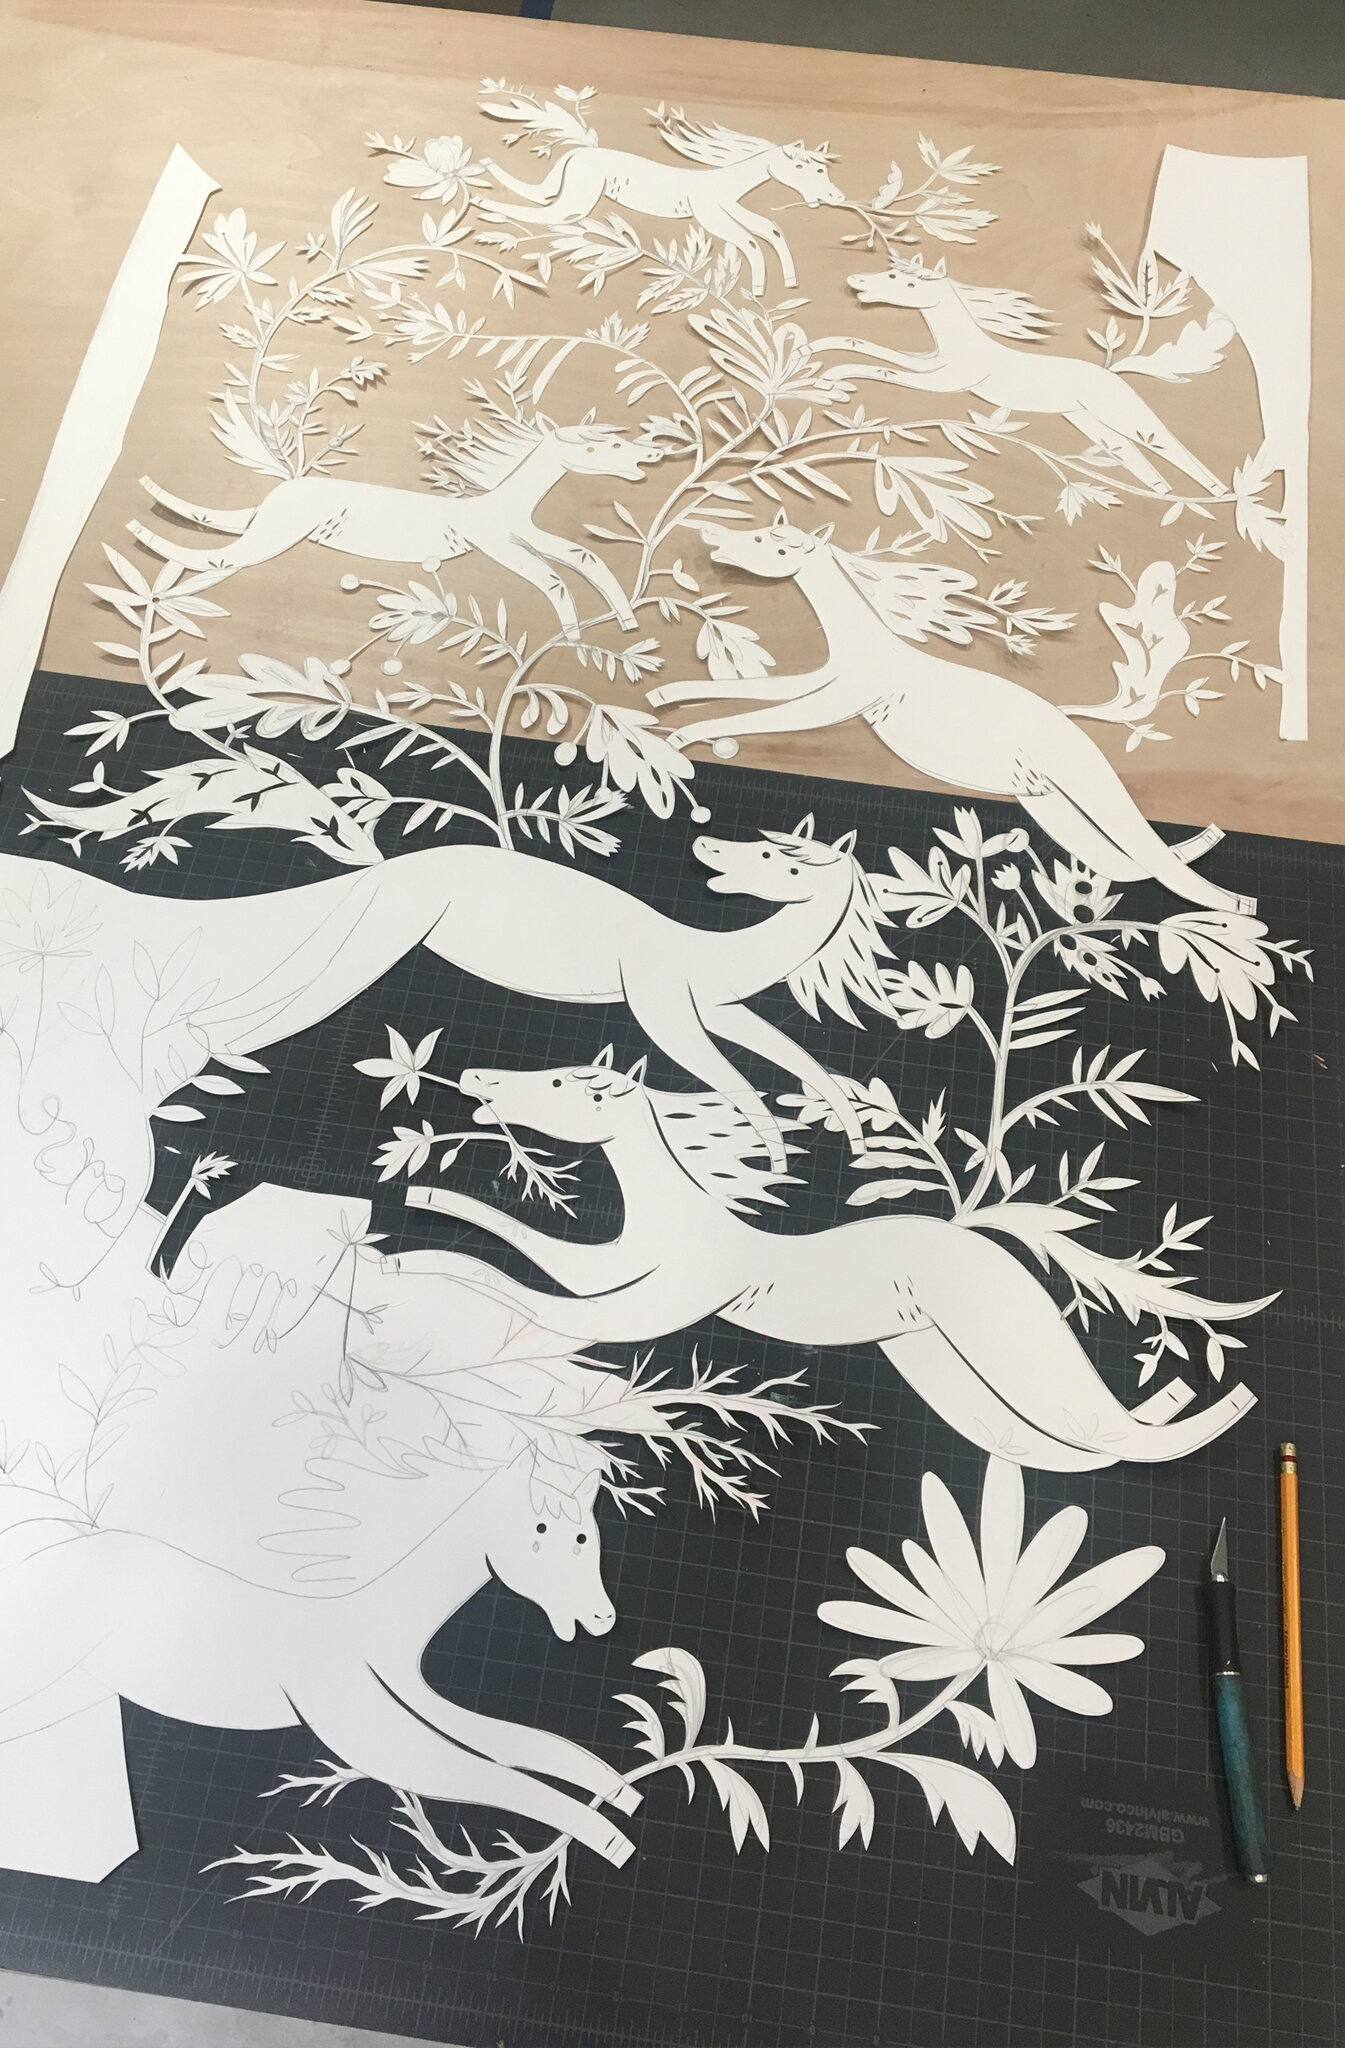 Work in progress  - single sheet of paper is cut with an exacto blade. Lines and silhouettes are drawn with a knife